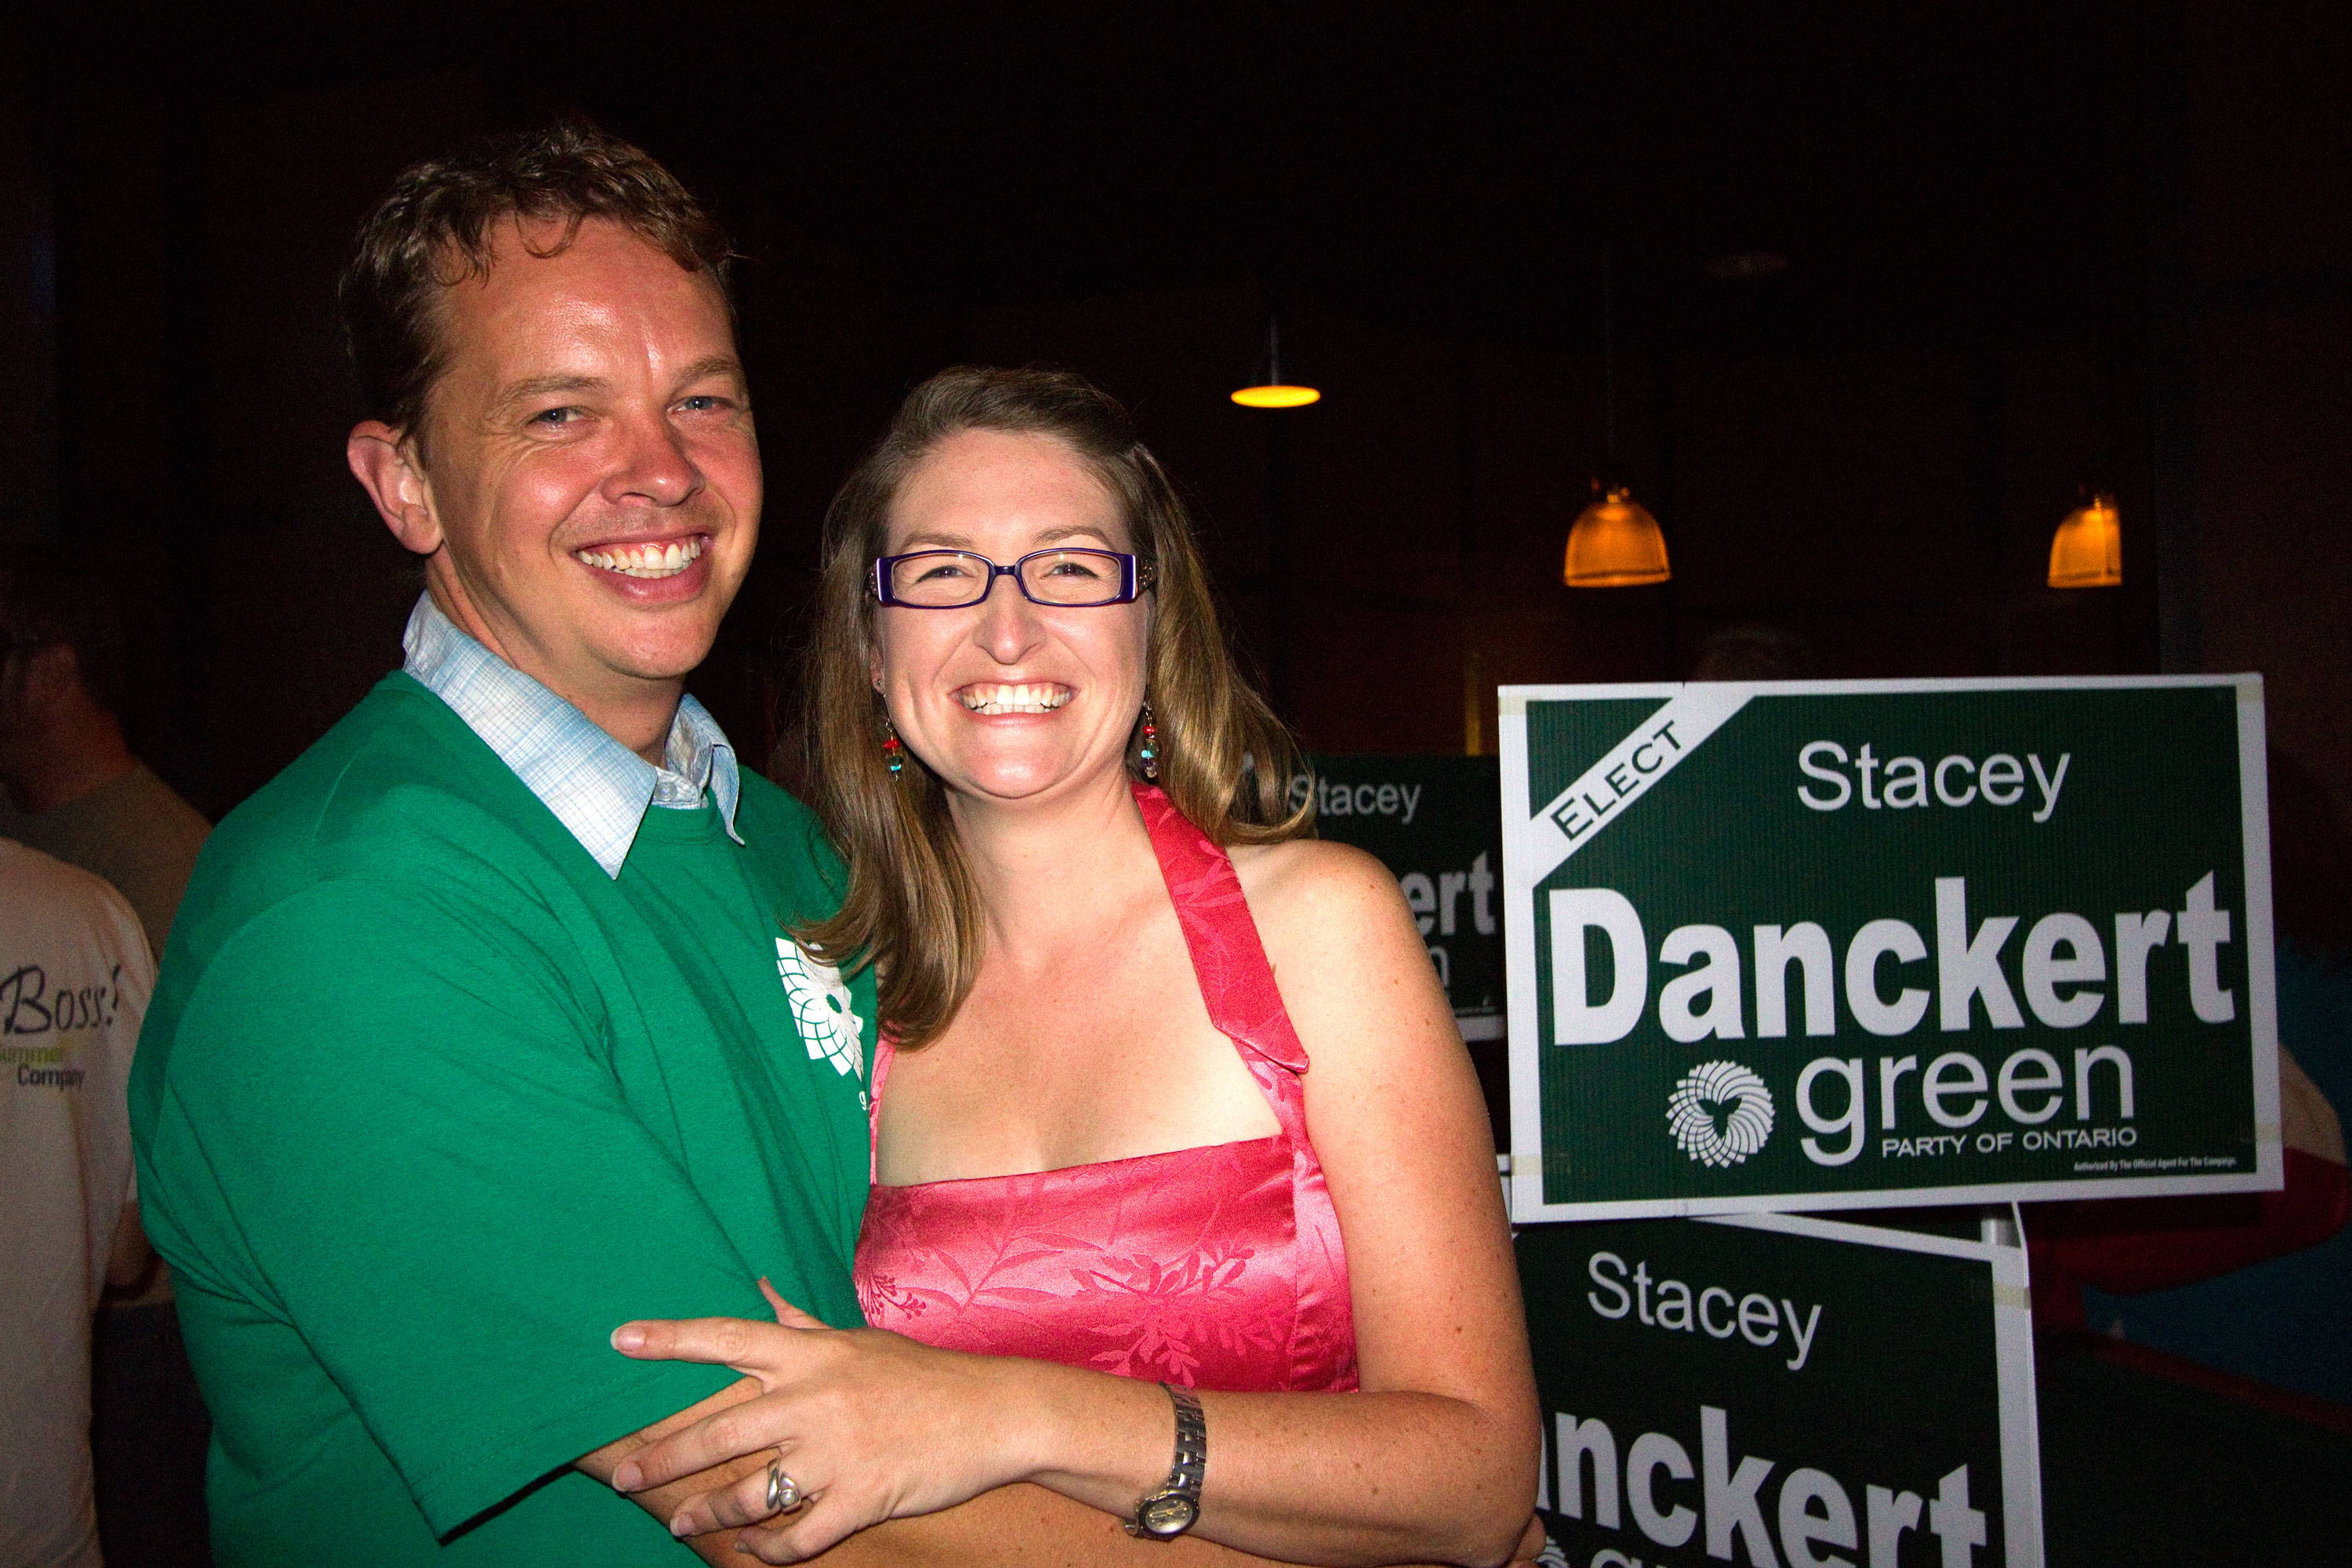 Stacey Danckert poses with her husband James. (Photo by Cristina Rucchetta).